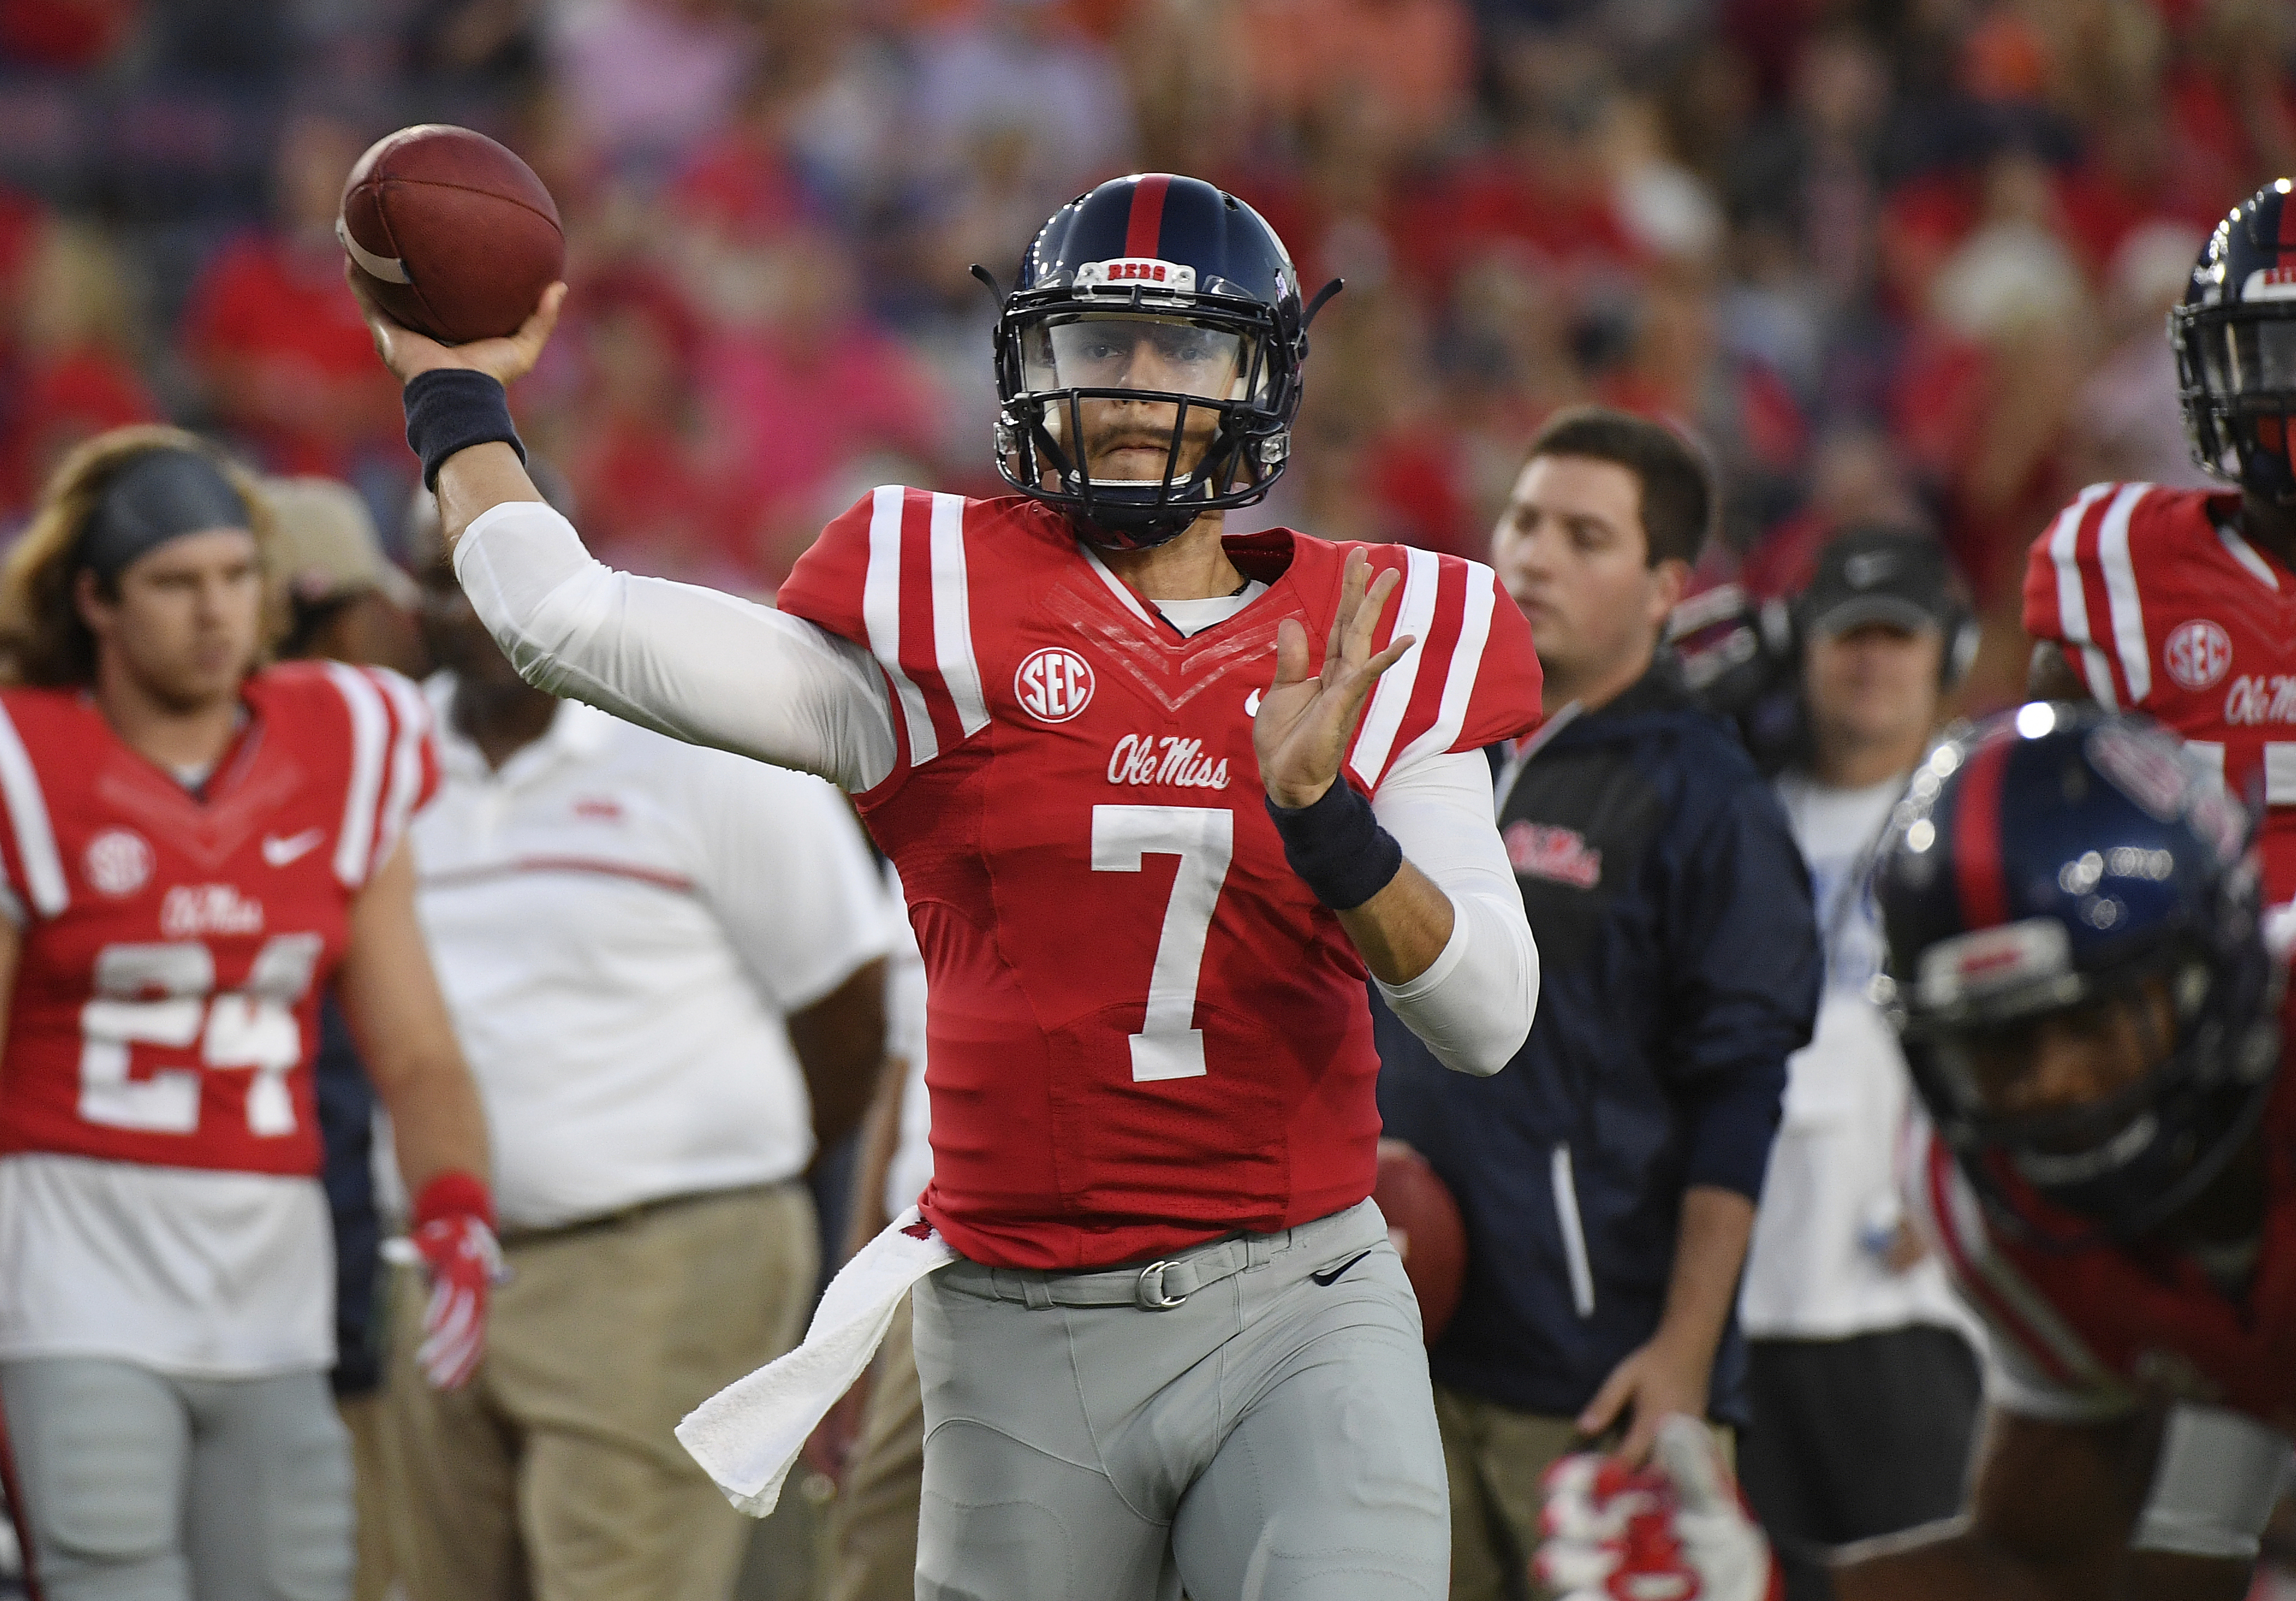 FILE - In this Oct. 29, 2016, file photo, Mississippi quarterback Jason Pellerin (7) releases a pass during warmups before an NCAA college football game against Auburn,  in Oxford, Miss. Ole Miss star quarterback Chad Kelly is out for the season with torn